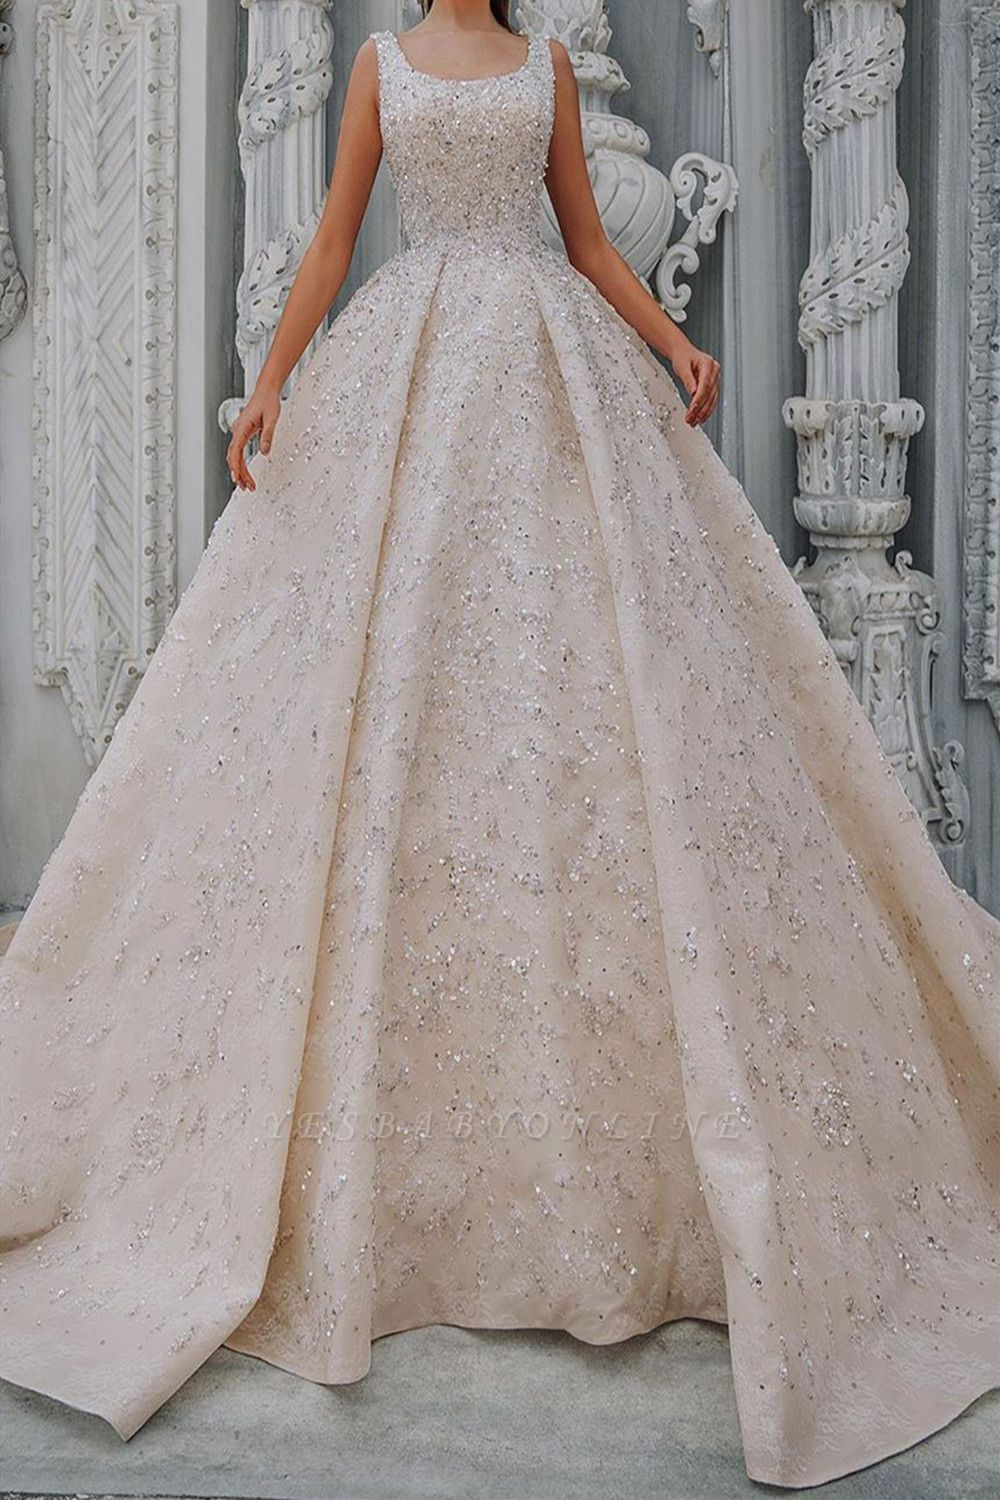 Luxury Off The Shoulder Nude Pink Satin Sequins Ruffles Ball Gown Wedding Dresses